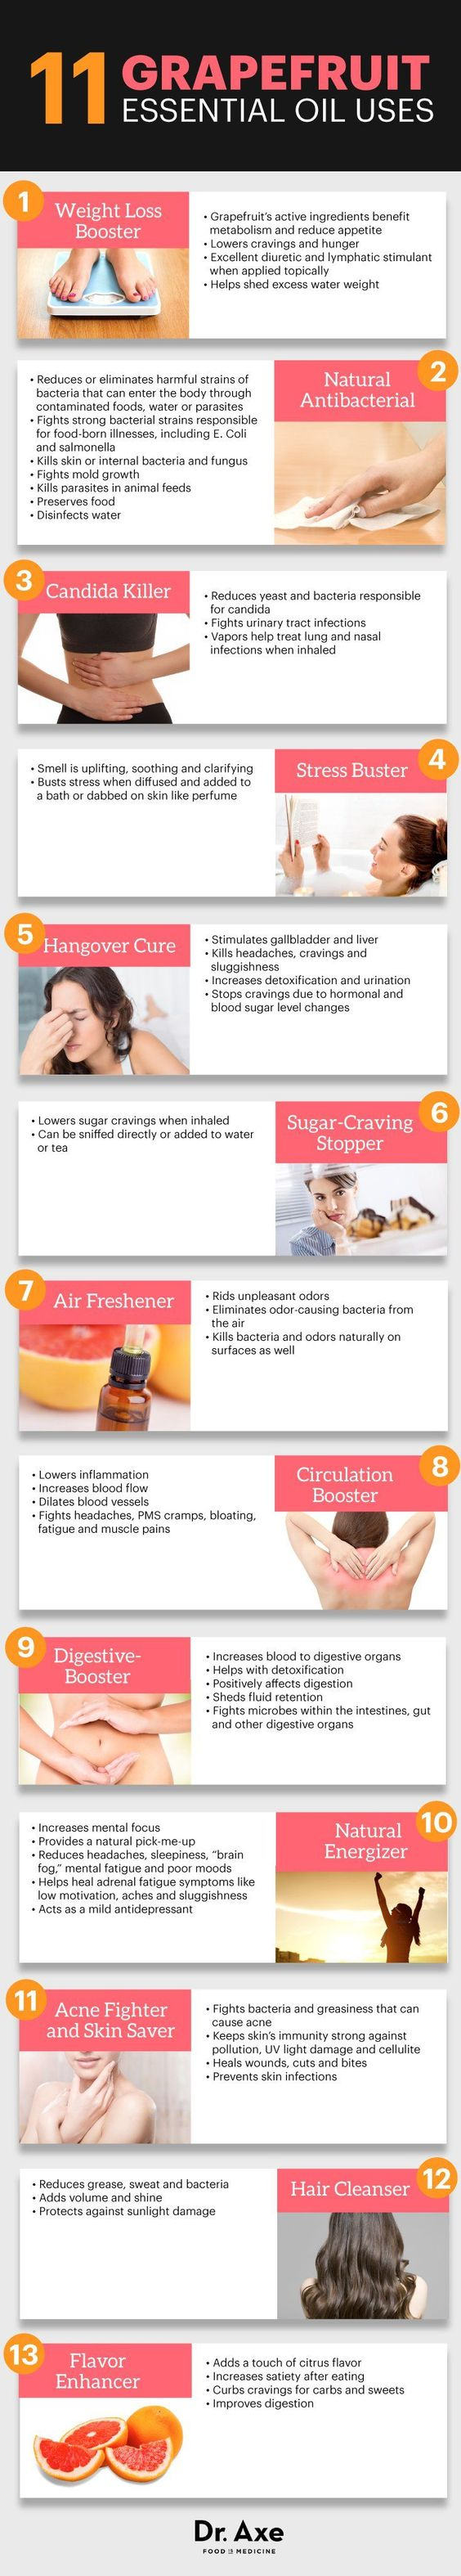 benefits of grapefruits for weight loss